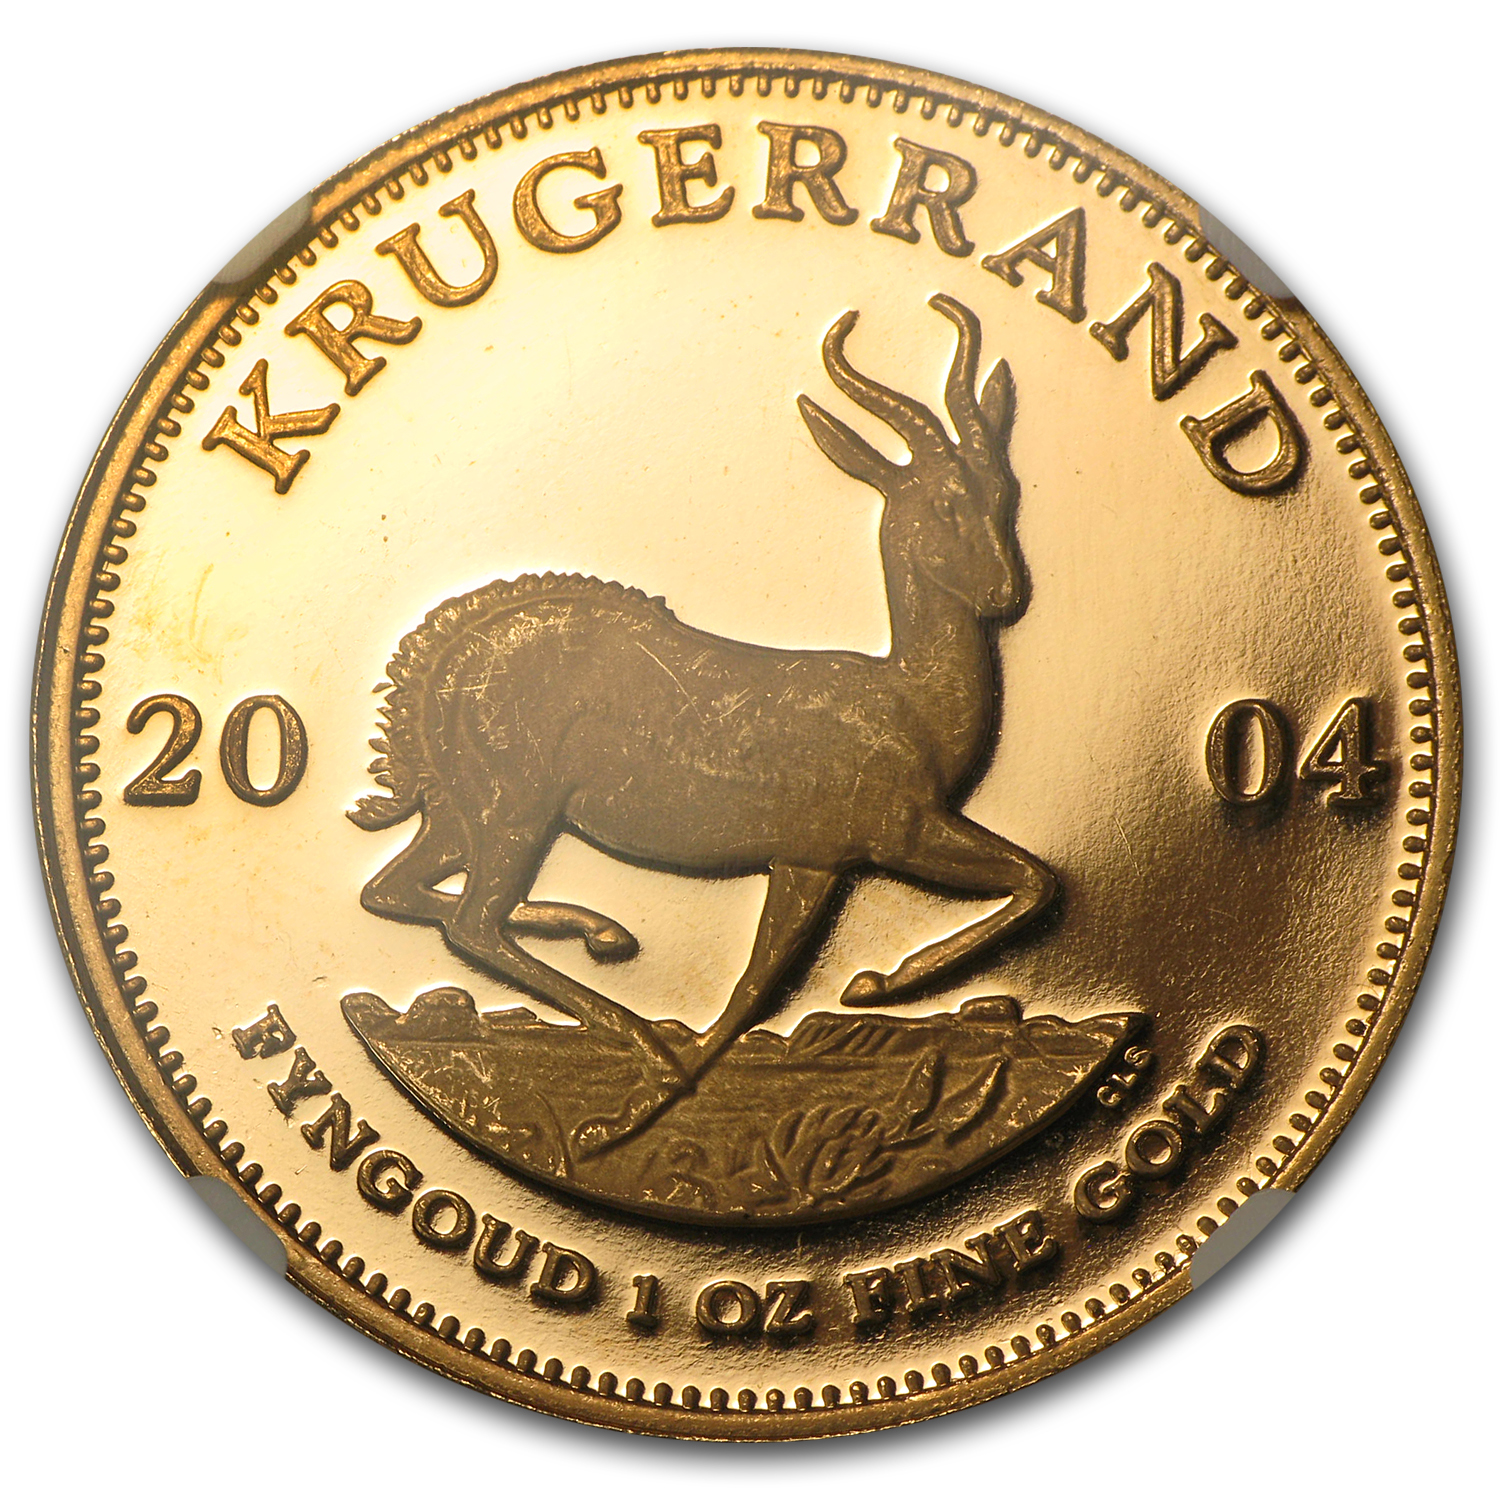 2004 South Africa 1 oz Gold Krugerrand PF-65 NGC (Signature)